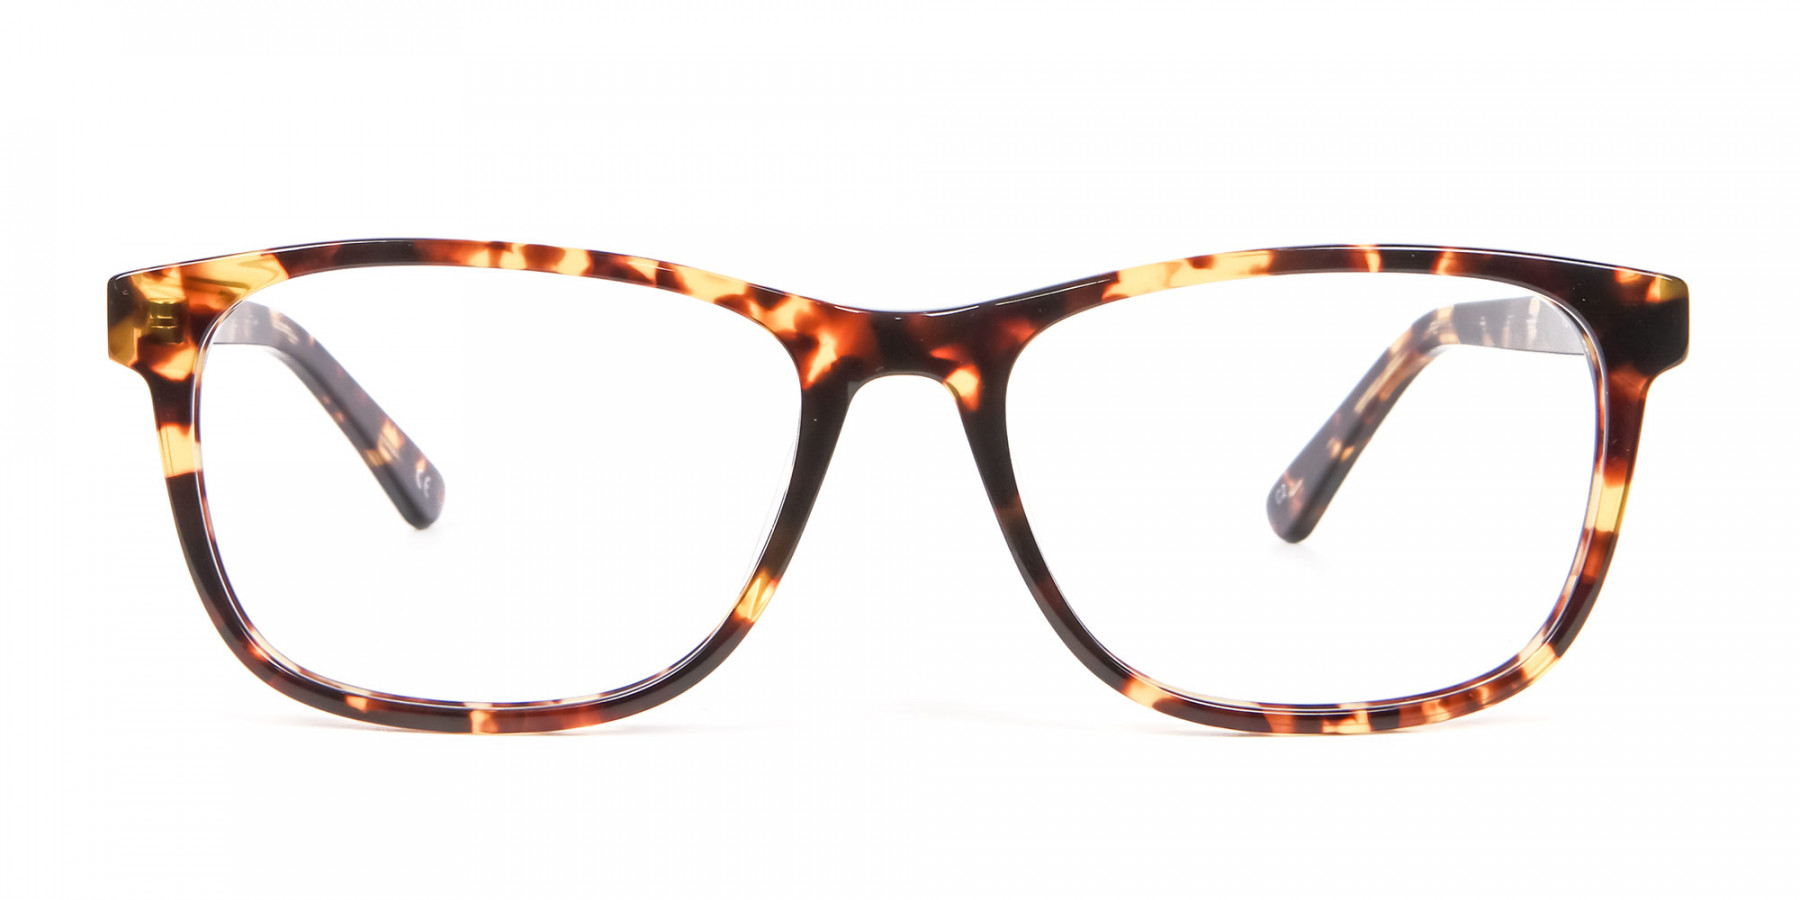 Glasses in the Tortoiseshell with New Chemistry